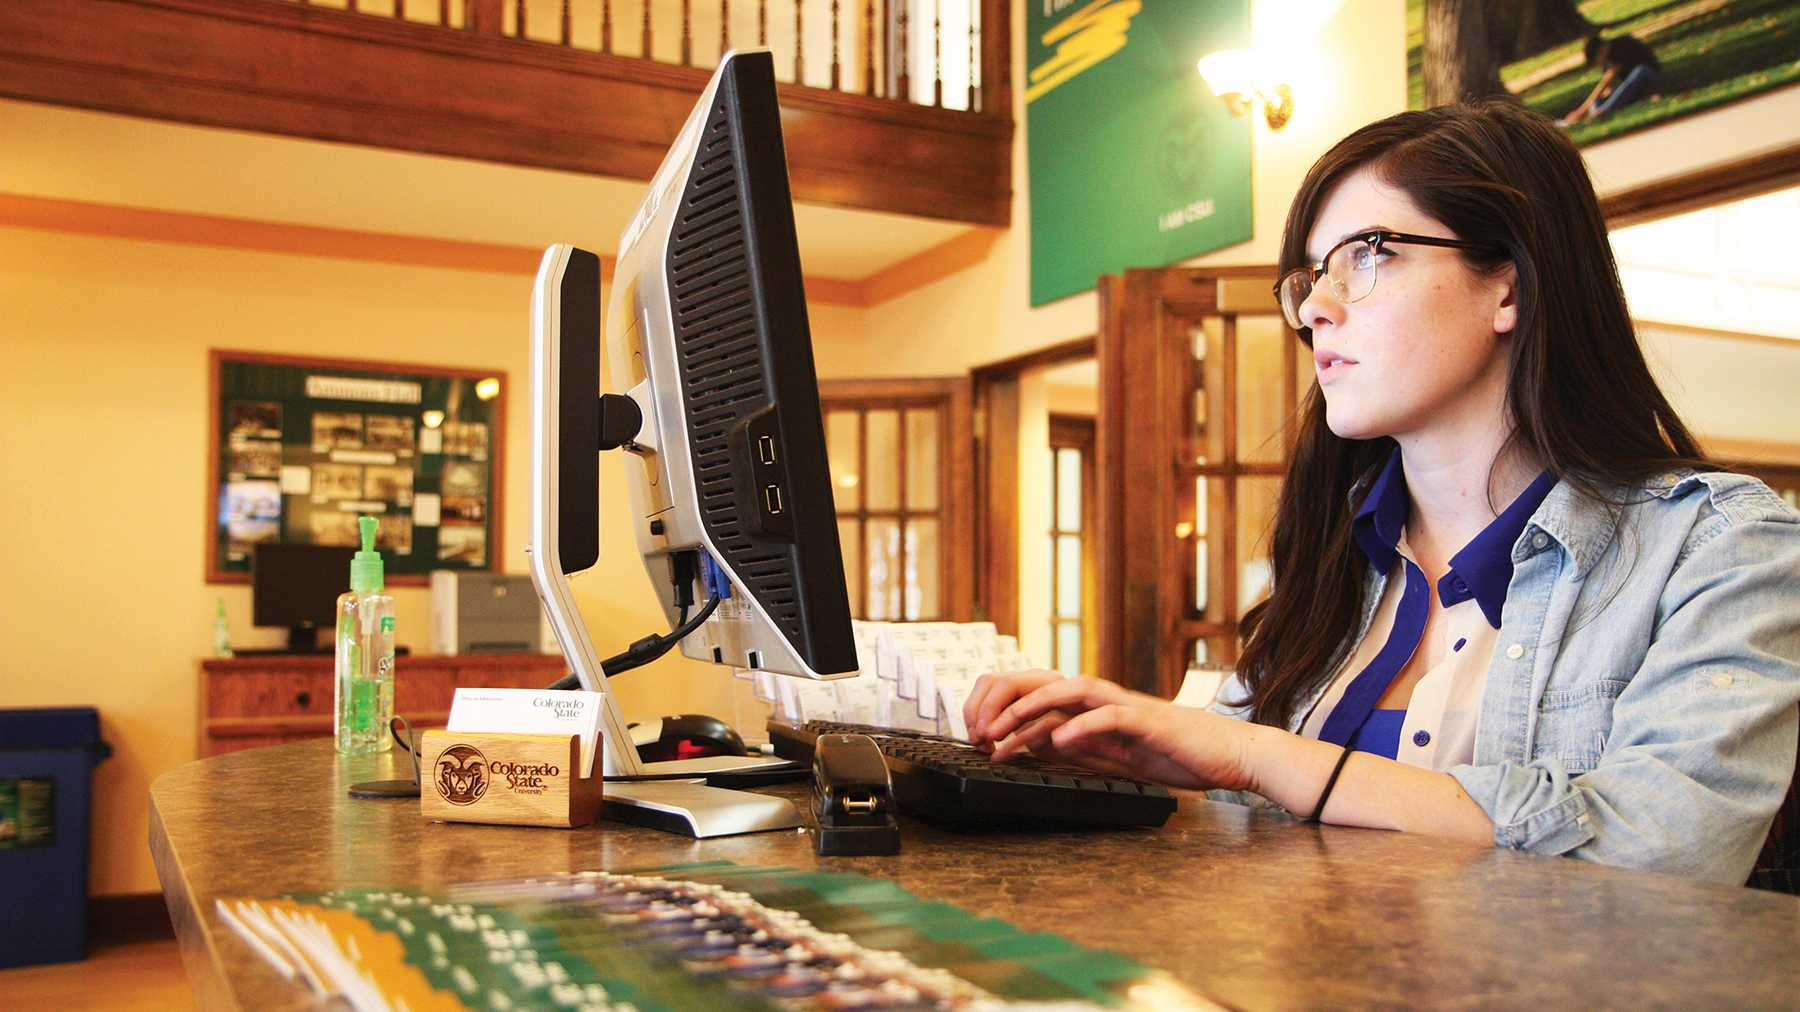 Junior Communications major, Hannah Vancuren, works the admissions office desk at CSU. She typically sees the biggest rush of prospective students in April as apllication and admission deadlines reach their end.